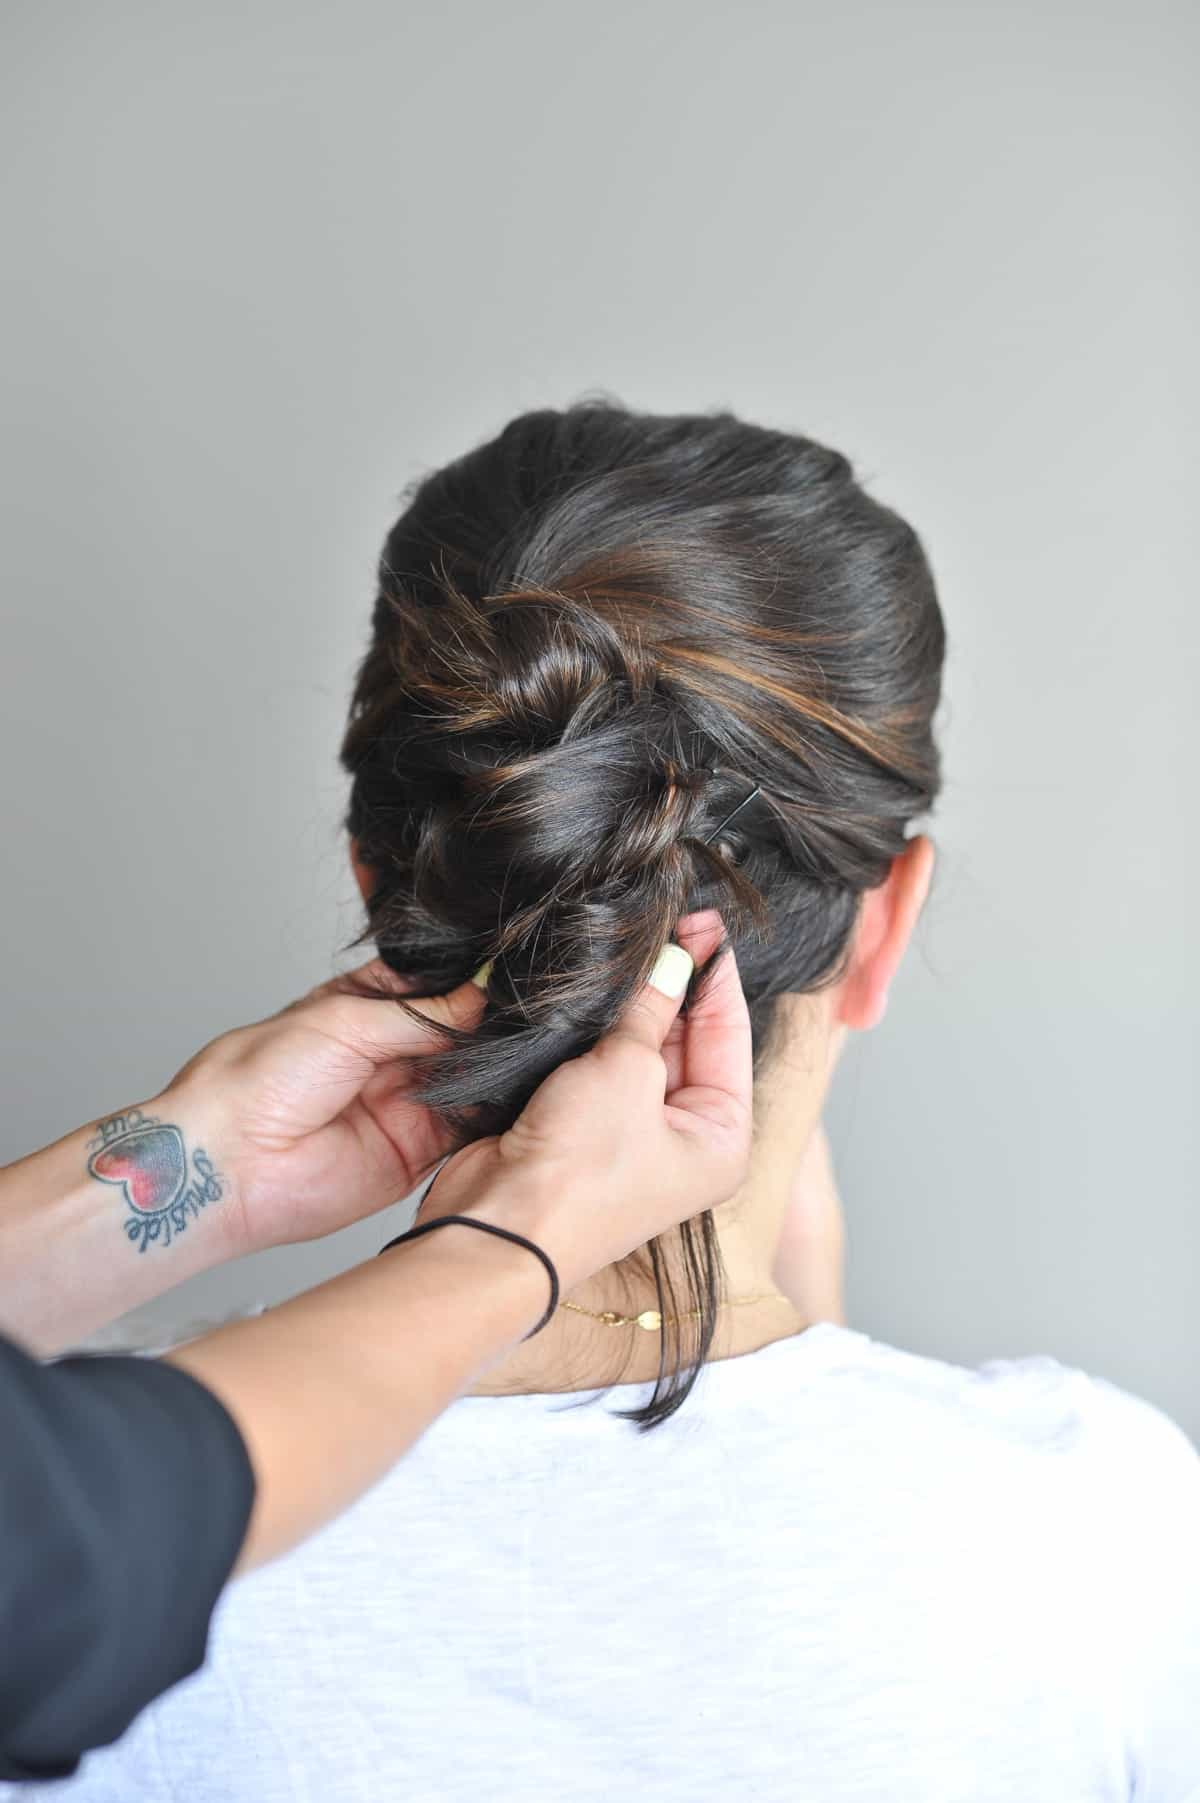 twisted up do hairstyle on short hair, hairstyles for short hair, wedding hair ideas - @mystylevita